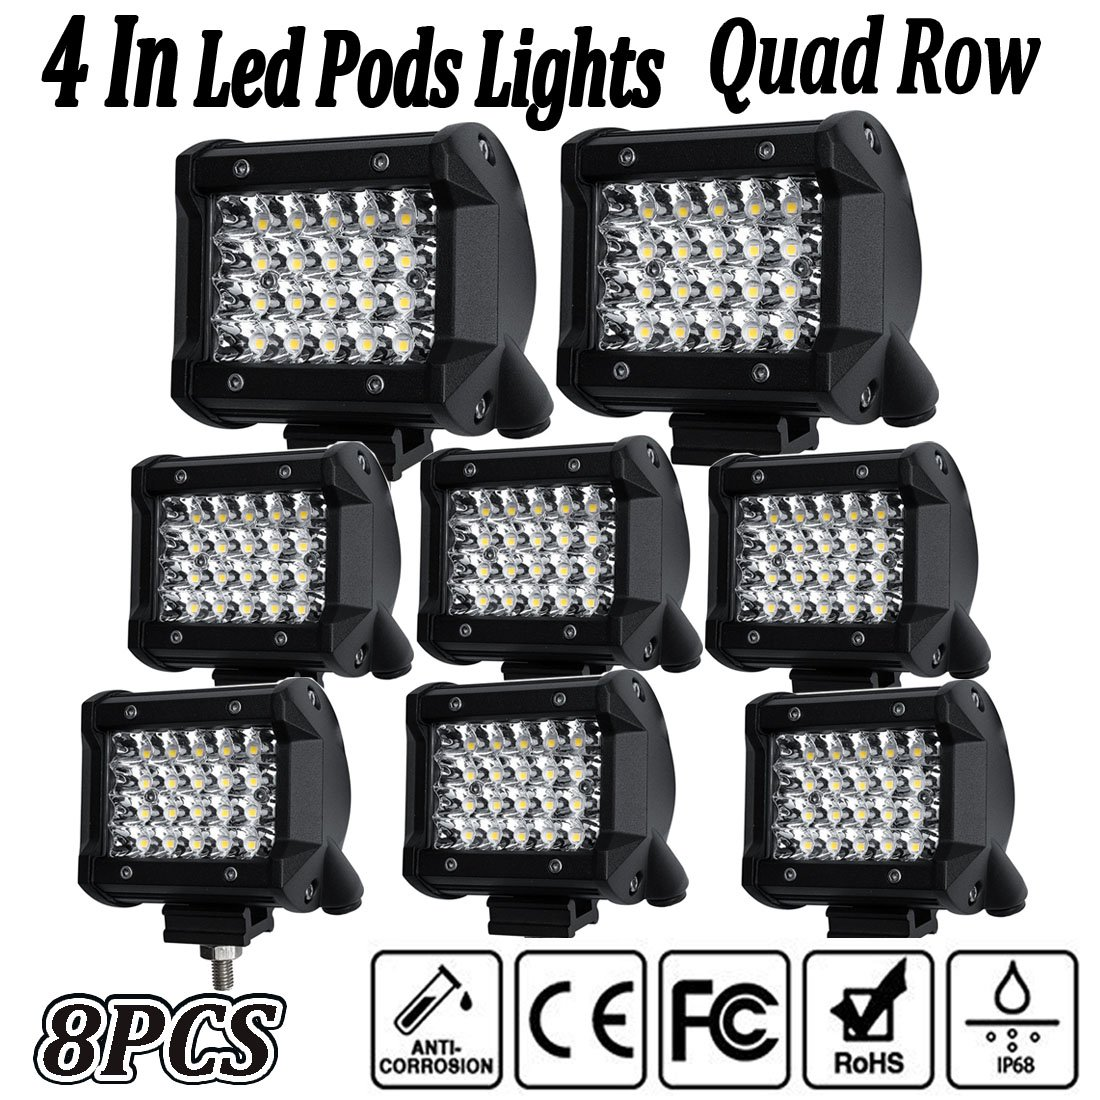 10LEDs - 60W LED Pod Lights,4Inch 2PCS LED Flood Lights LED Pods Work Light Bar Driving Fog Lights Spot Beam Super Bright Cubes Lights Off-road Jeep Truck Boat ATV SUV